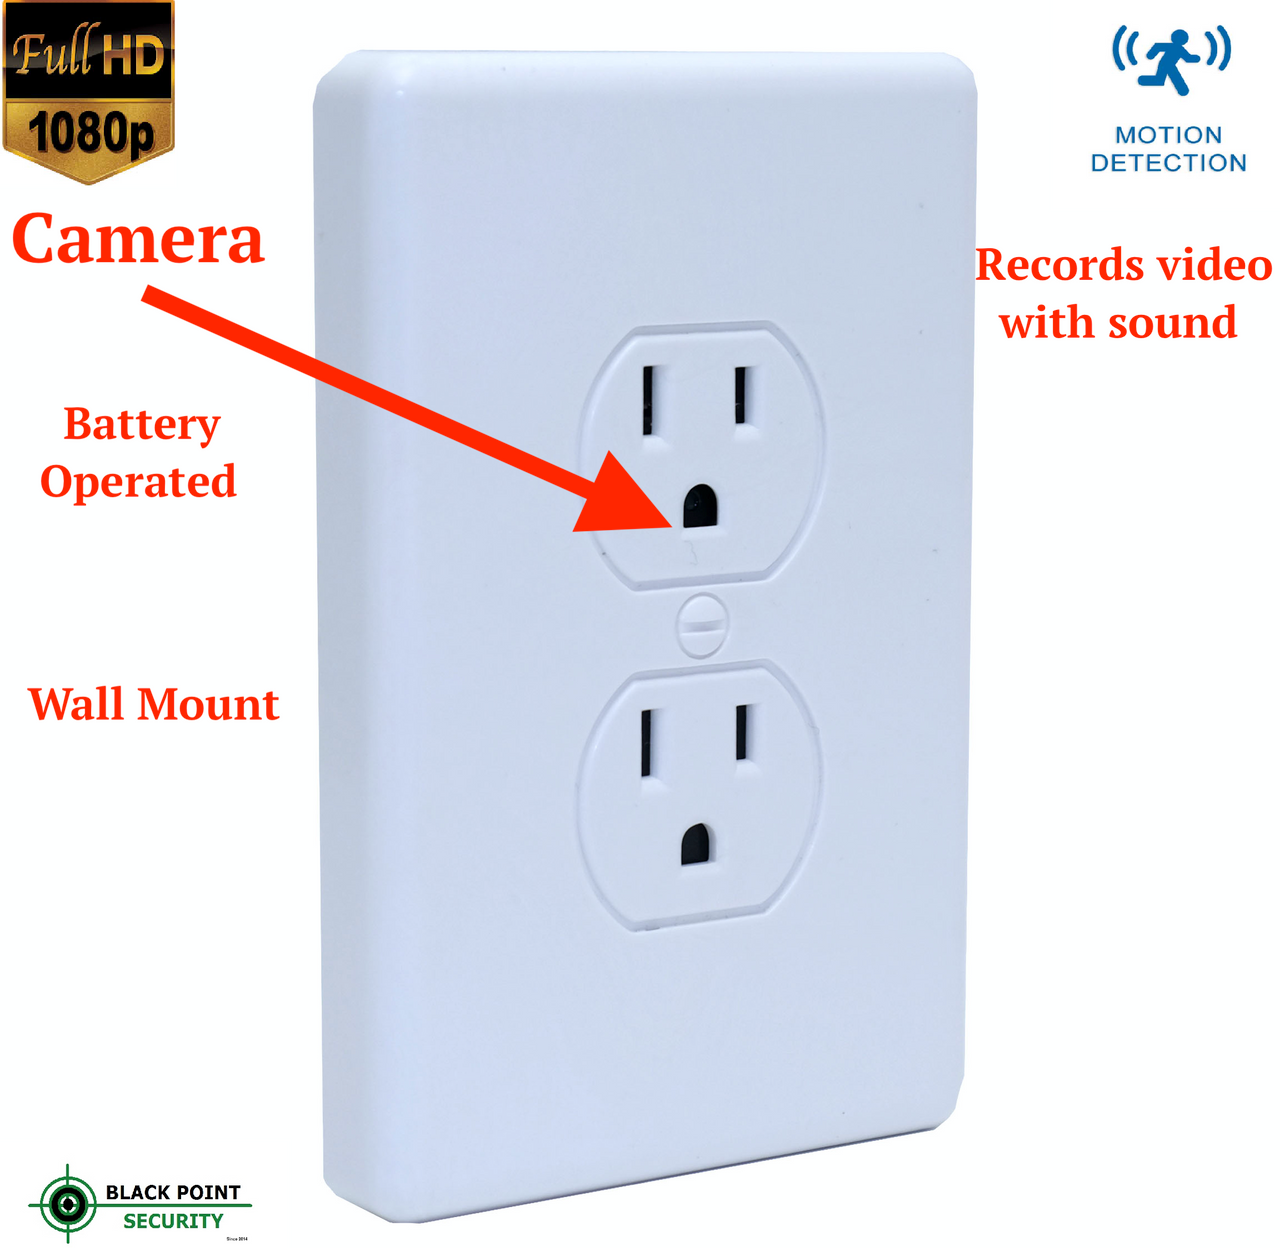 Battery Powered Outlet >> Wall Outlet 1080p Full Hd Hidden Spy Battery Operated Camera Dvr